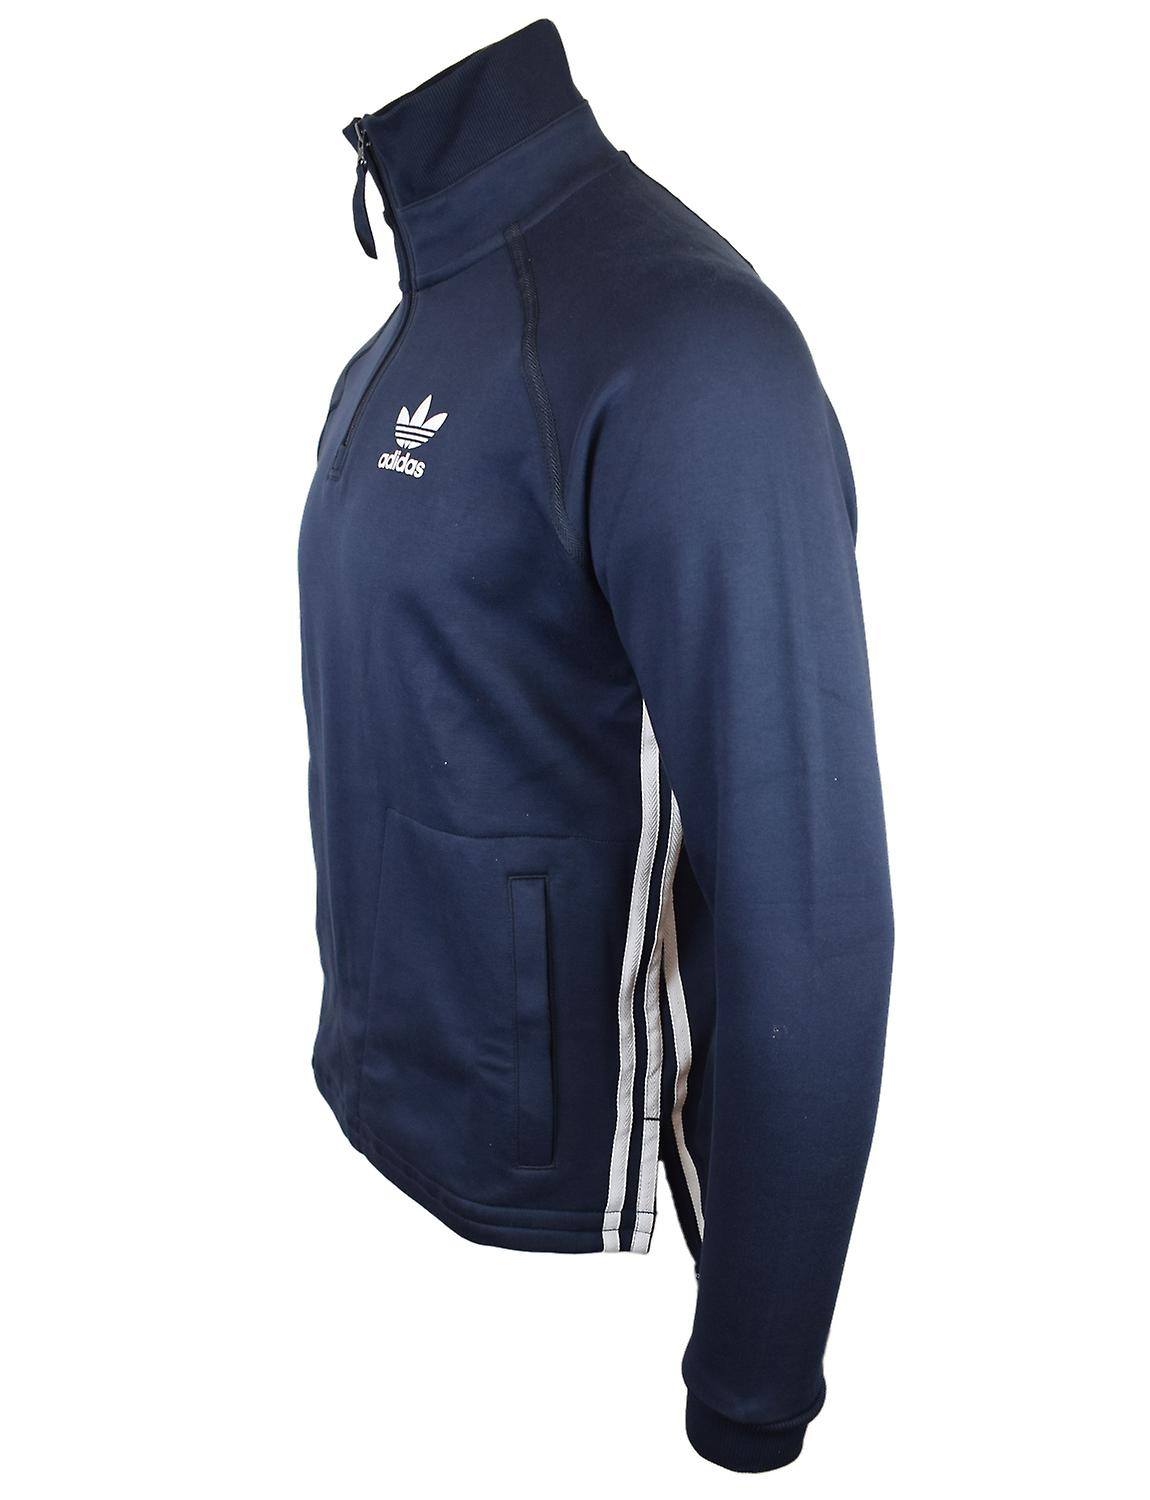 Adidas Original NMD Field Jacket, Men's Fashion, Clothes